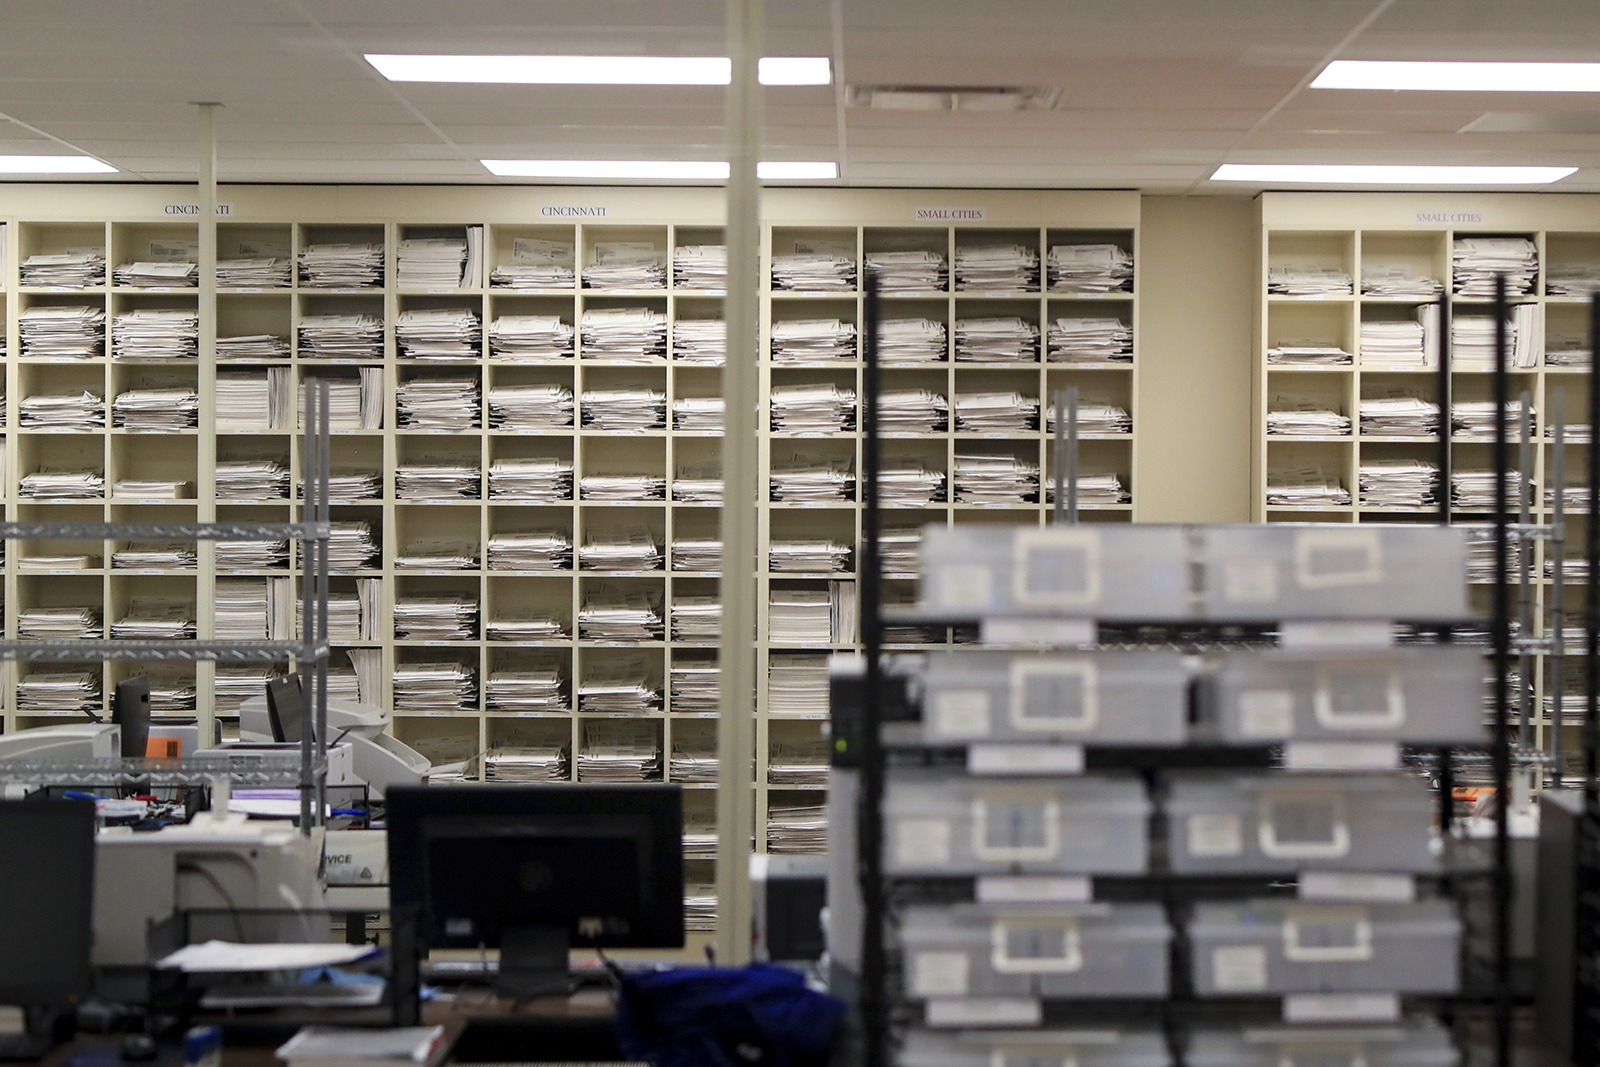 A view of the ballot counting room during the general elections at the Hamilton County Board of Elections, on Tuesday, in Norwood, Ohio.